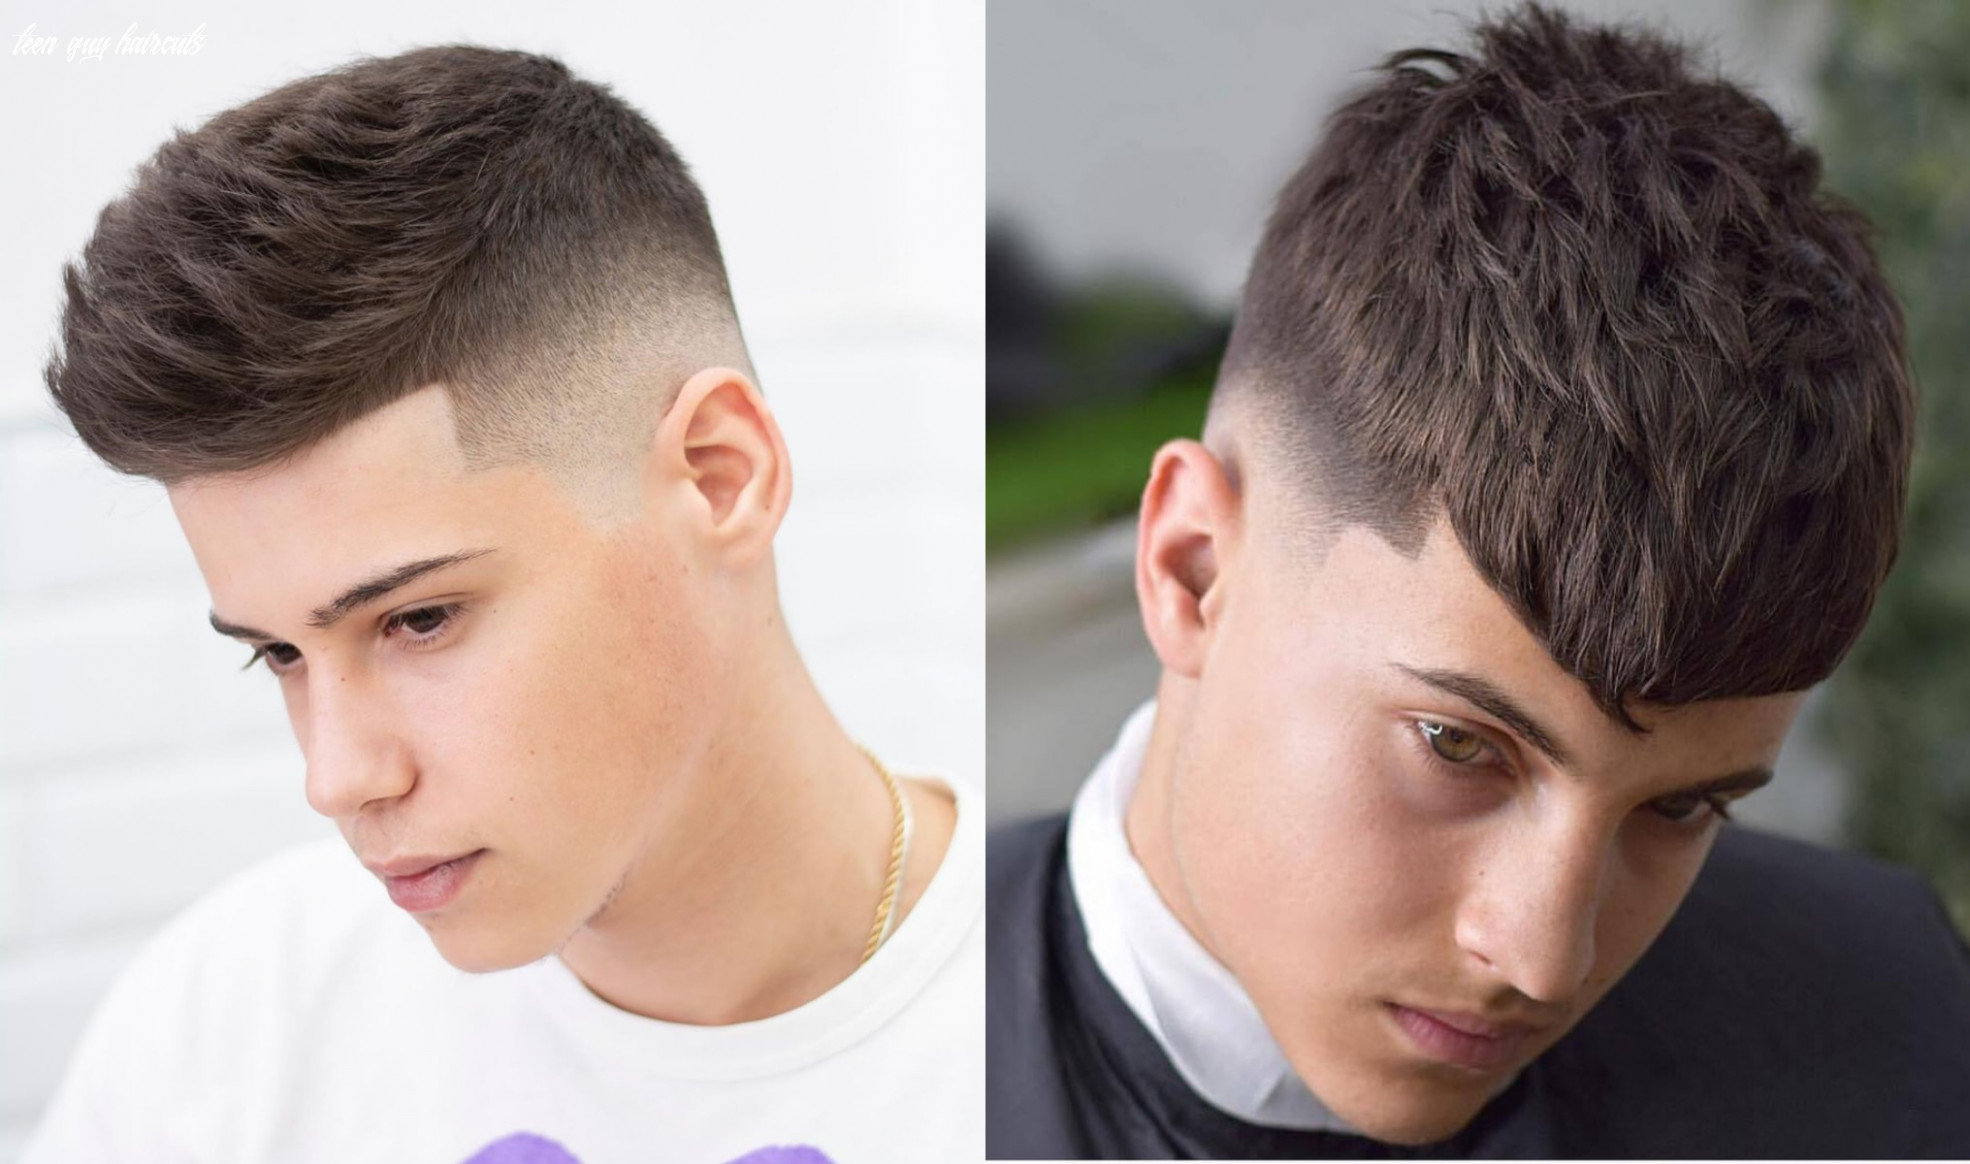 11 best haircuts for teenage guys (11 trends) | stylesrant teen guy haircuts